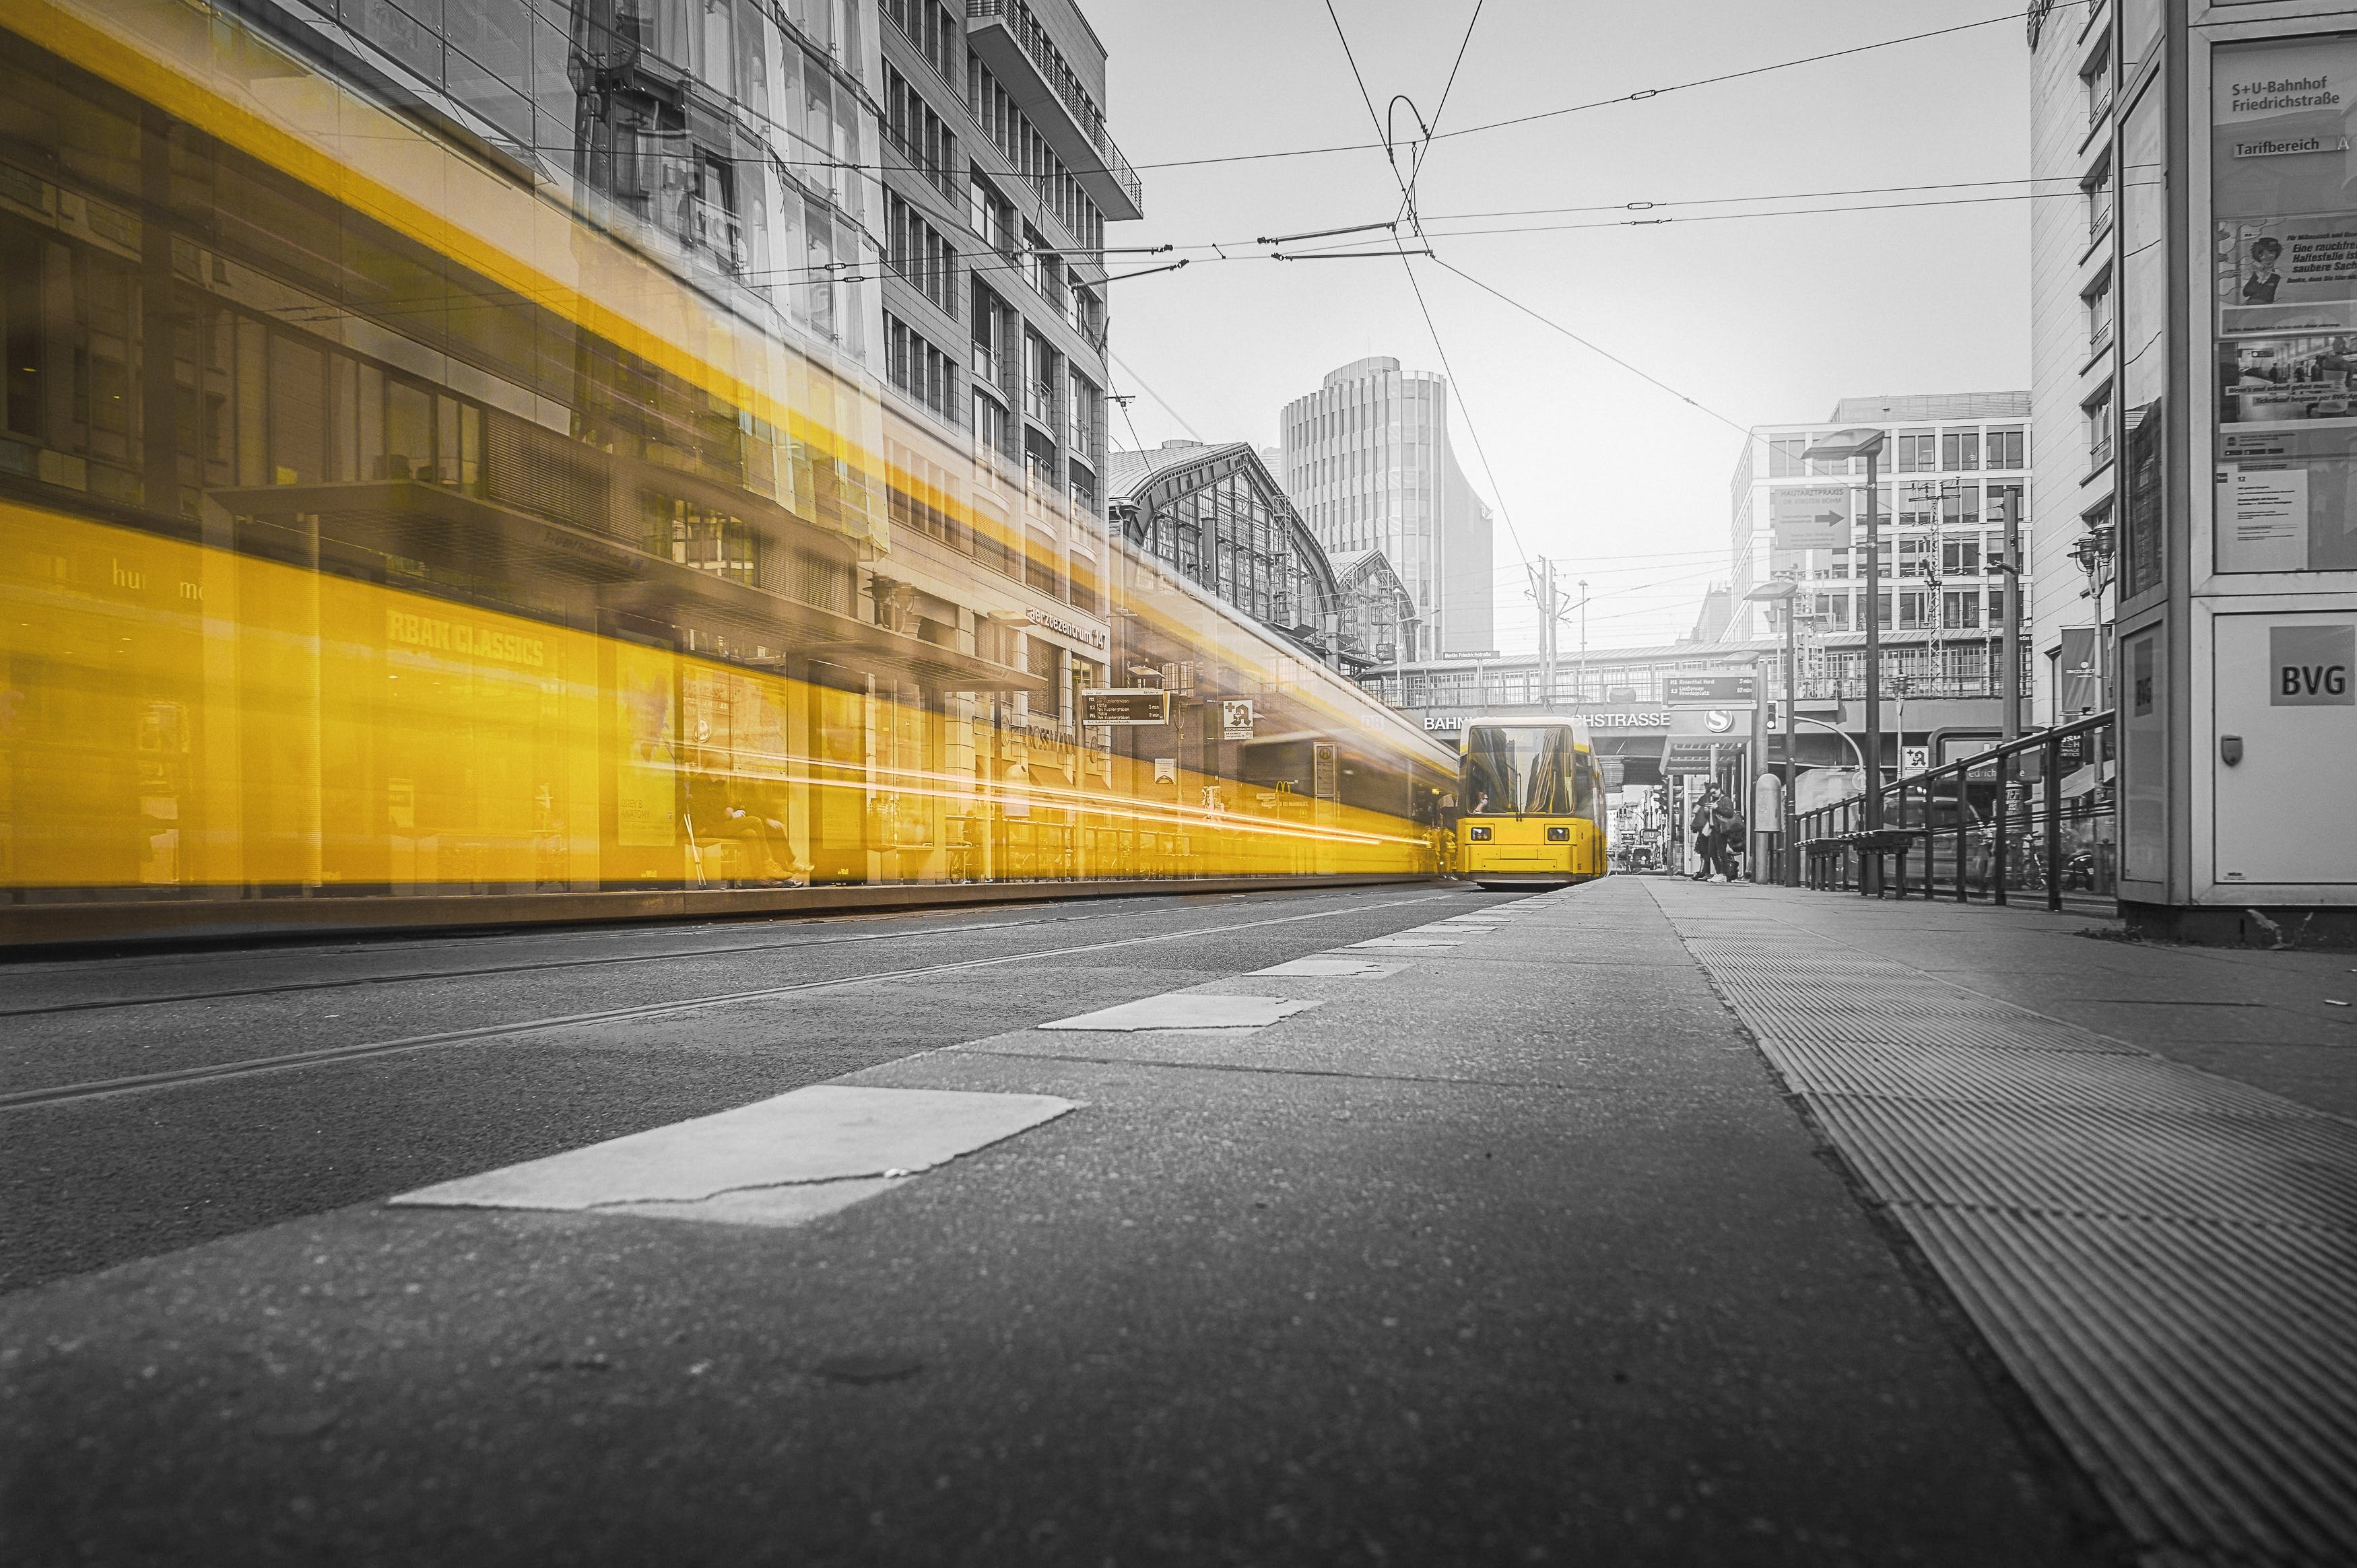 Free stock photo of road, street, train, yellow